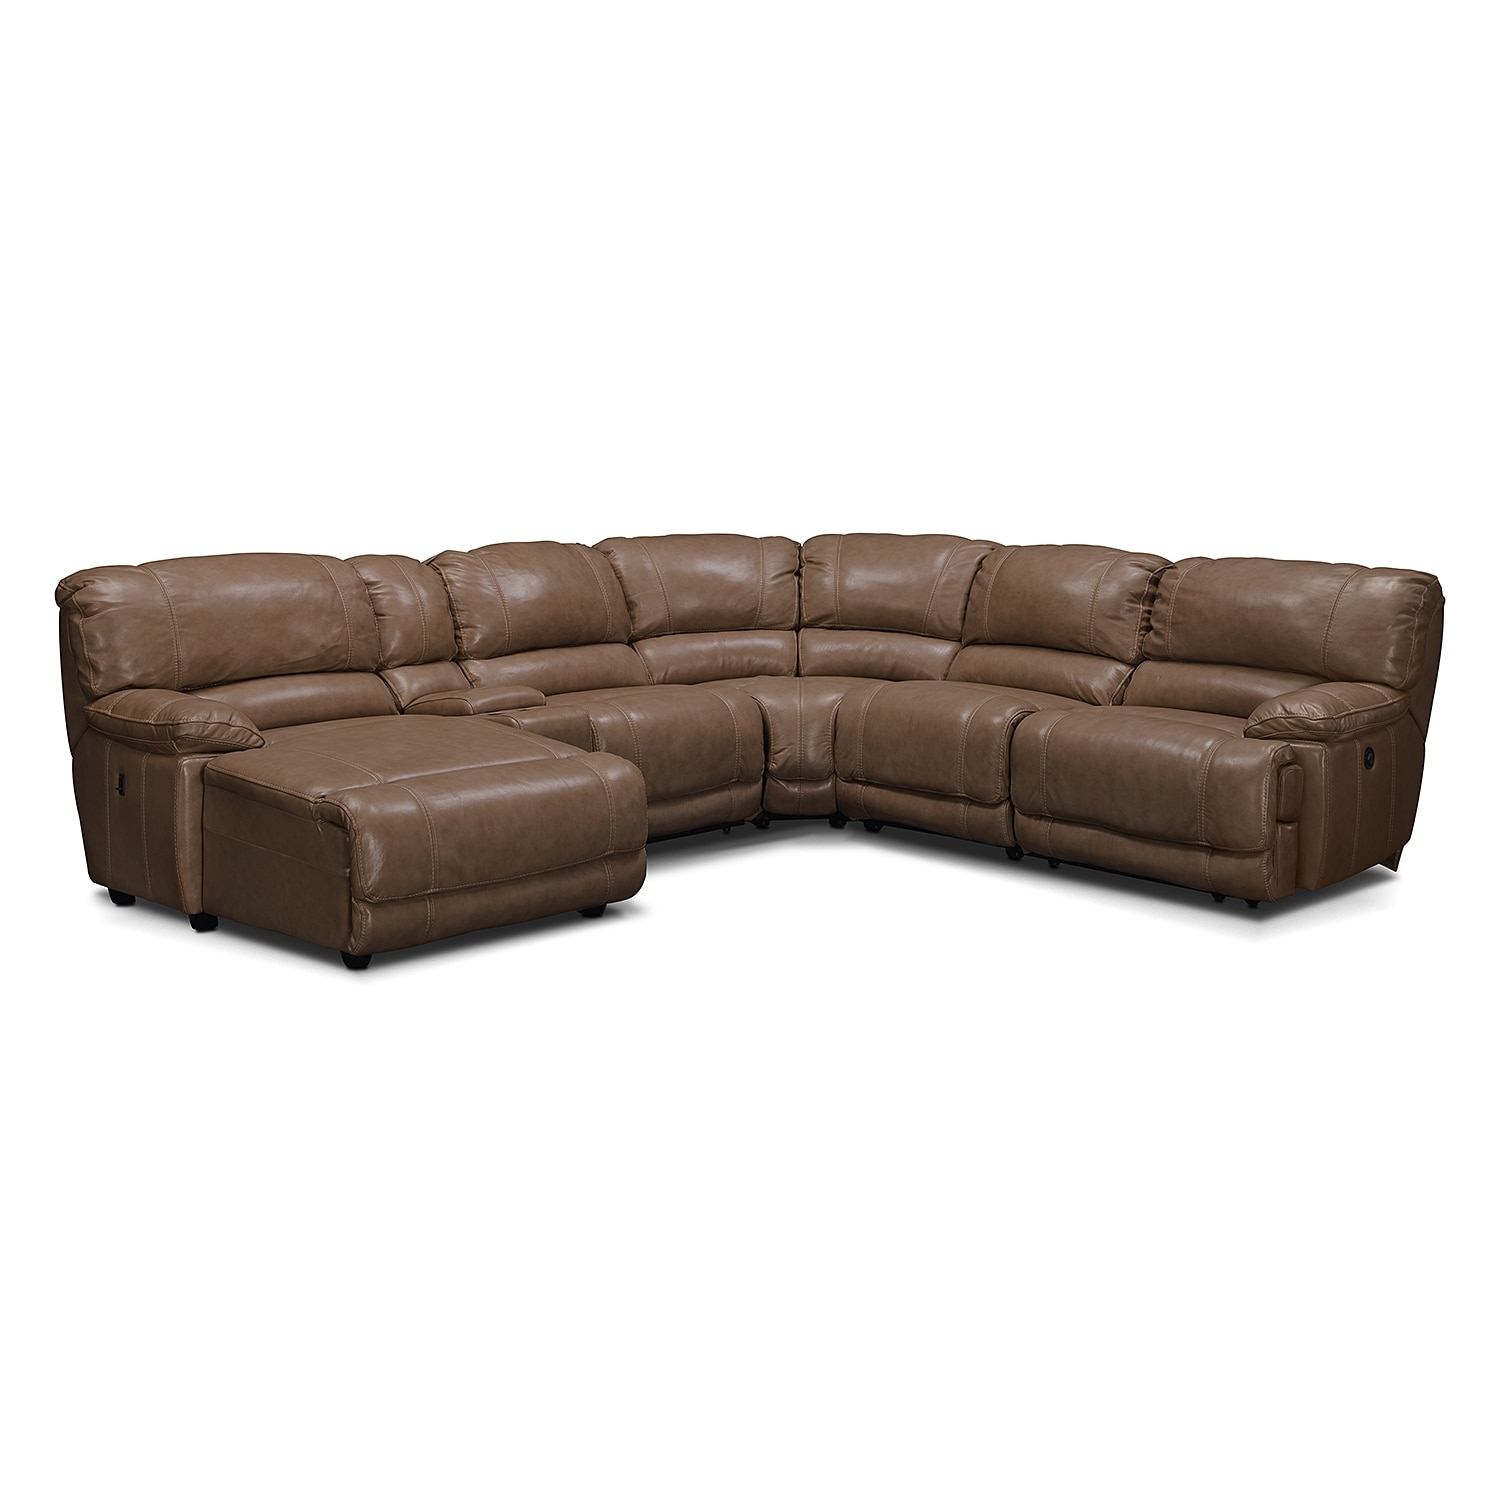 Living Room Furniture - Clinton Taupe 6 Pc. Power Reclining Sectional (Reverse)